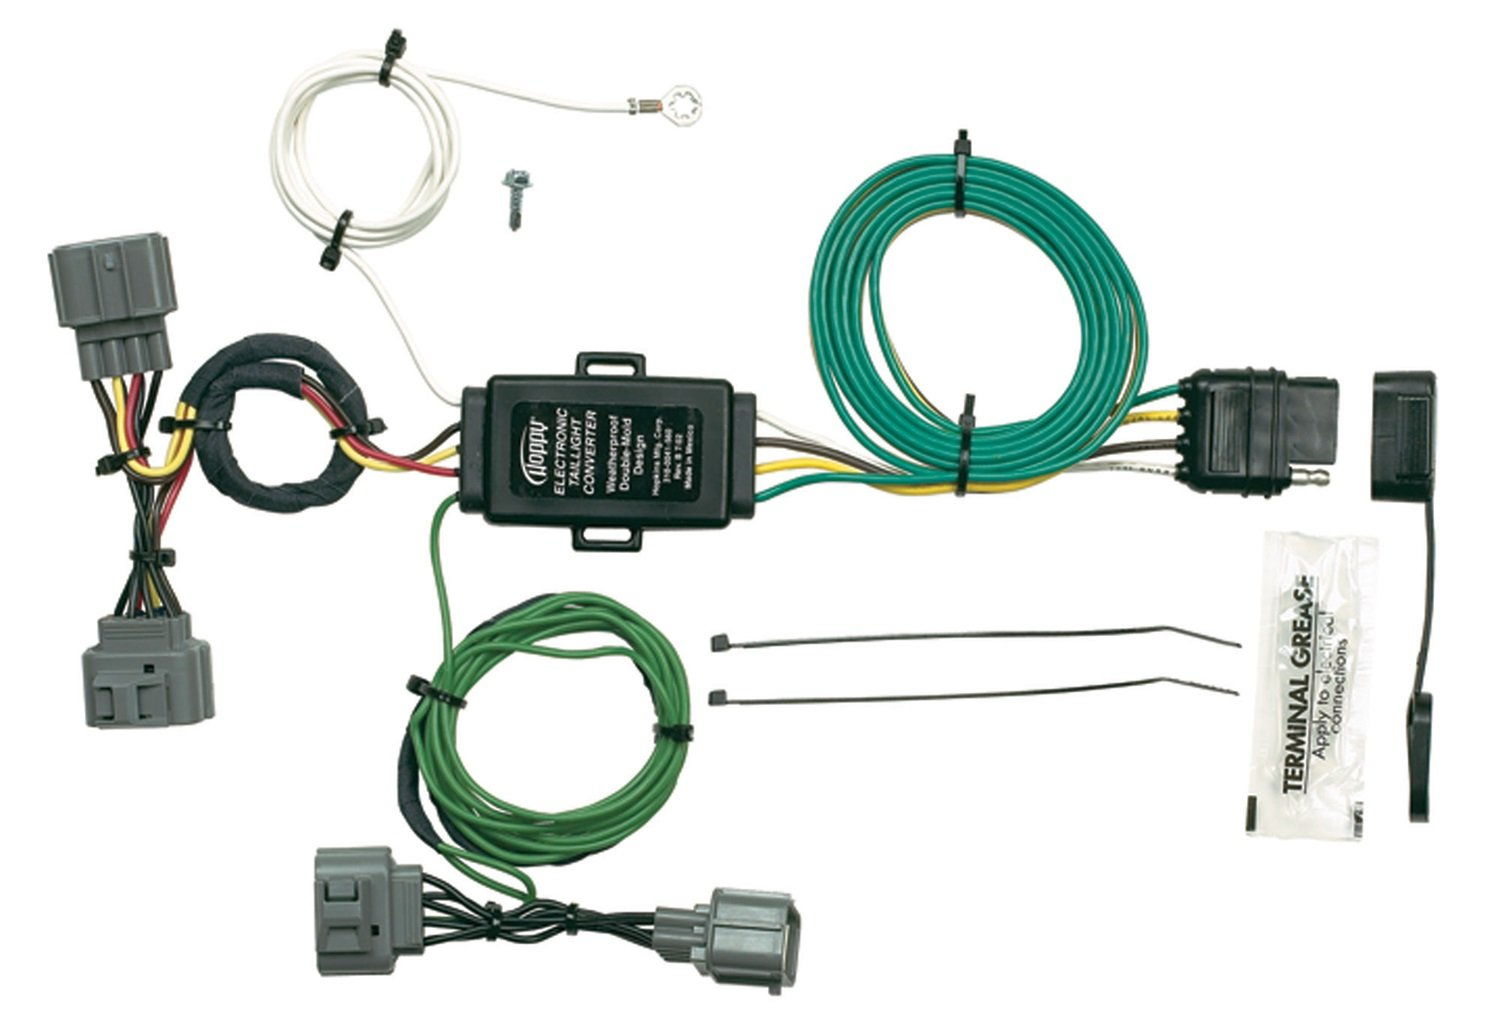 61uhFx0L6RL._SL1500_ amazon com hopkins 43125 plug in simple vehicle wiring kit honda ridgeline trailer wiring harness at webbmarketing.co